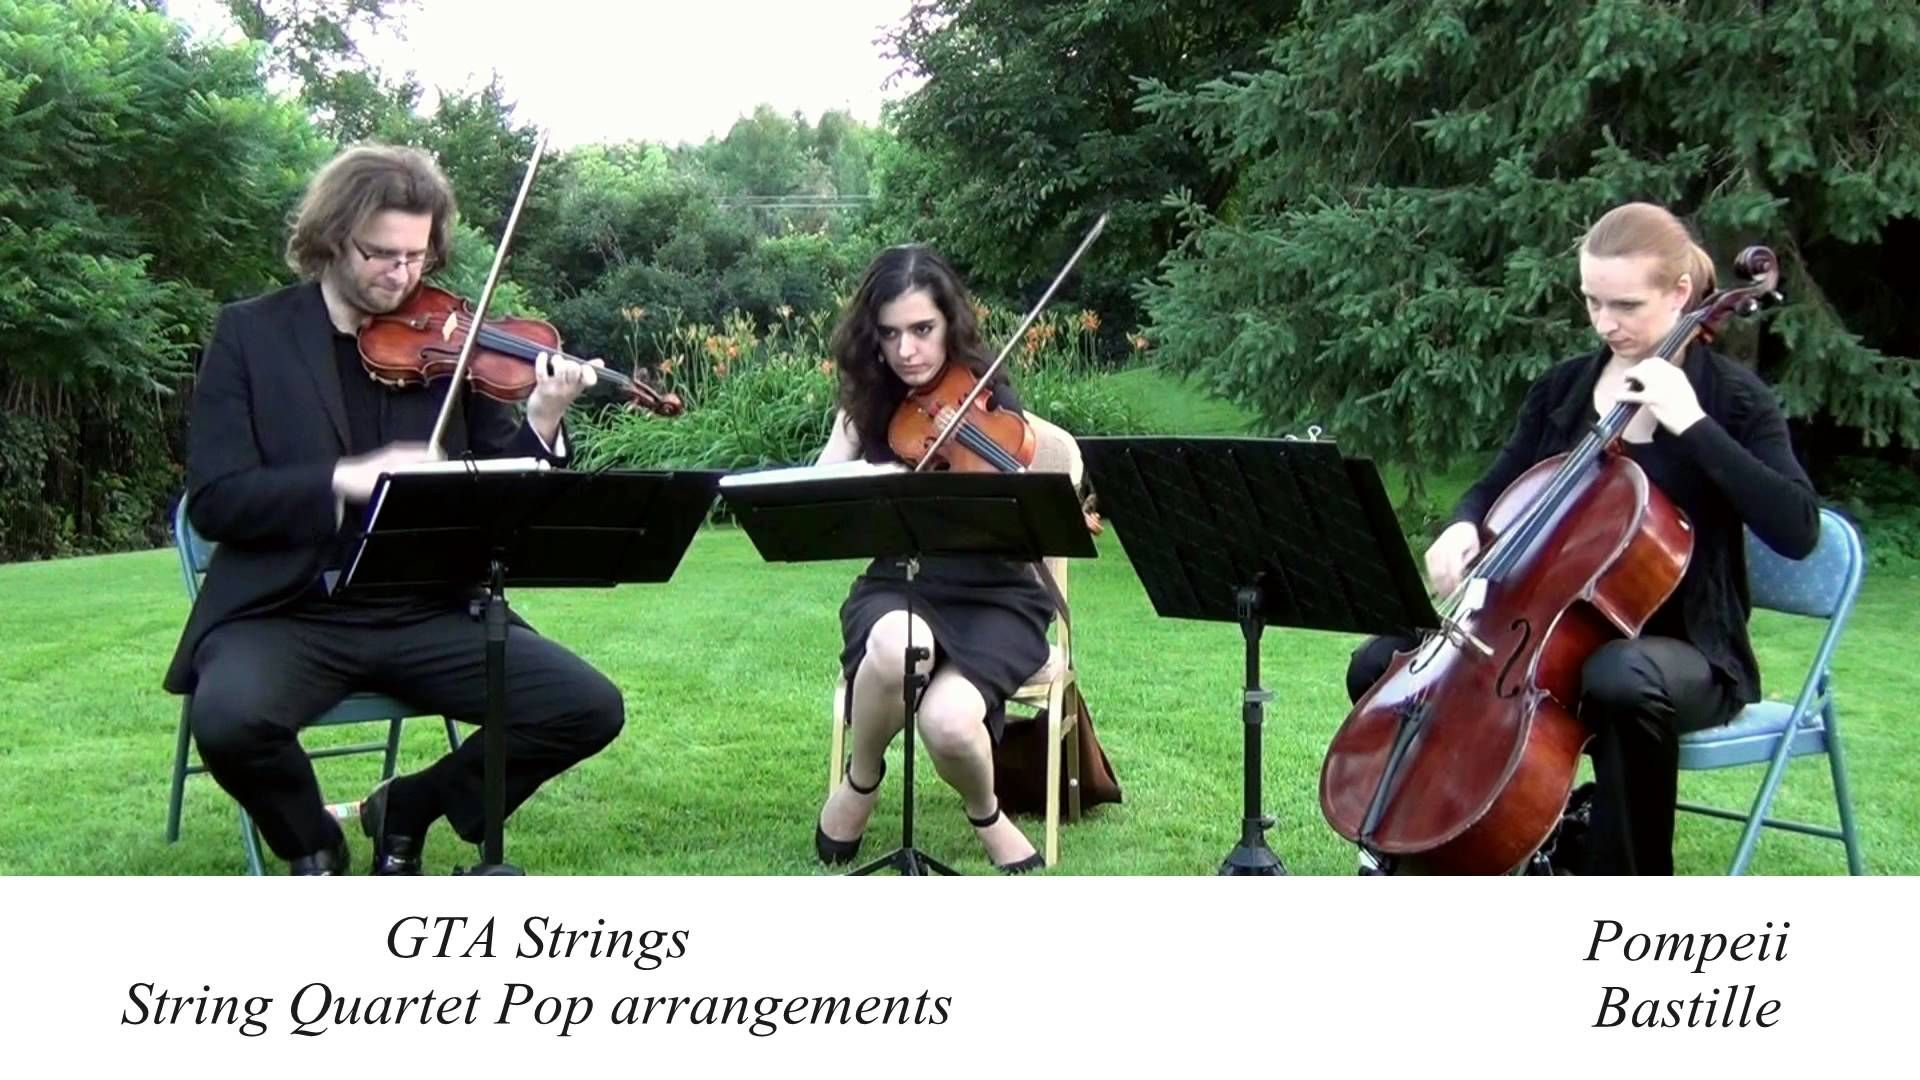 Pin by Katie Olmstead on Wedding Live music band, Music